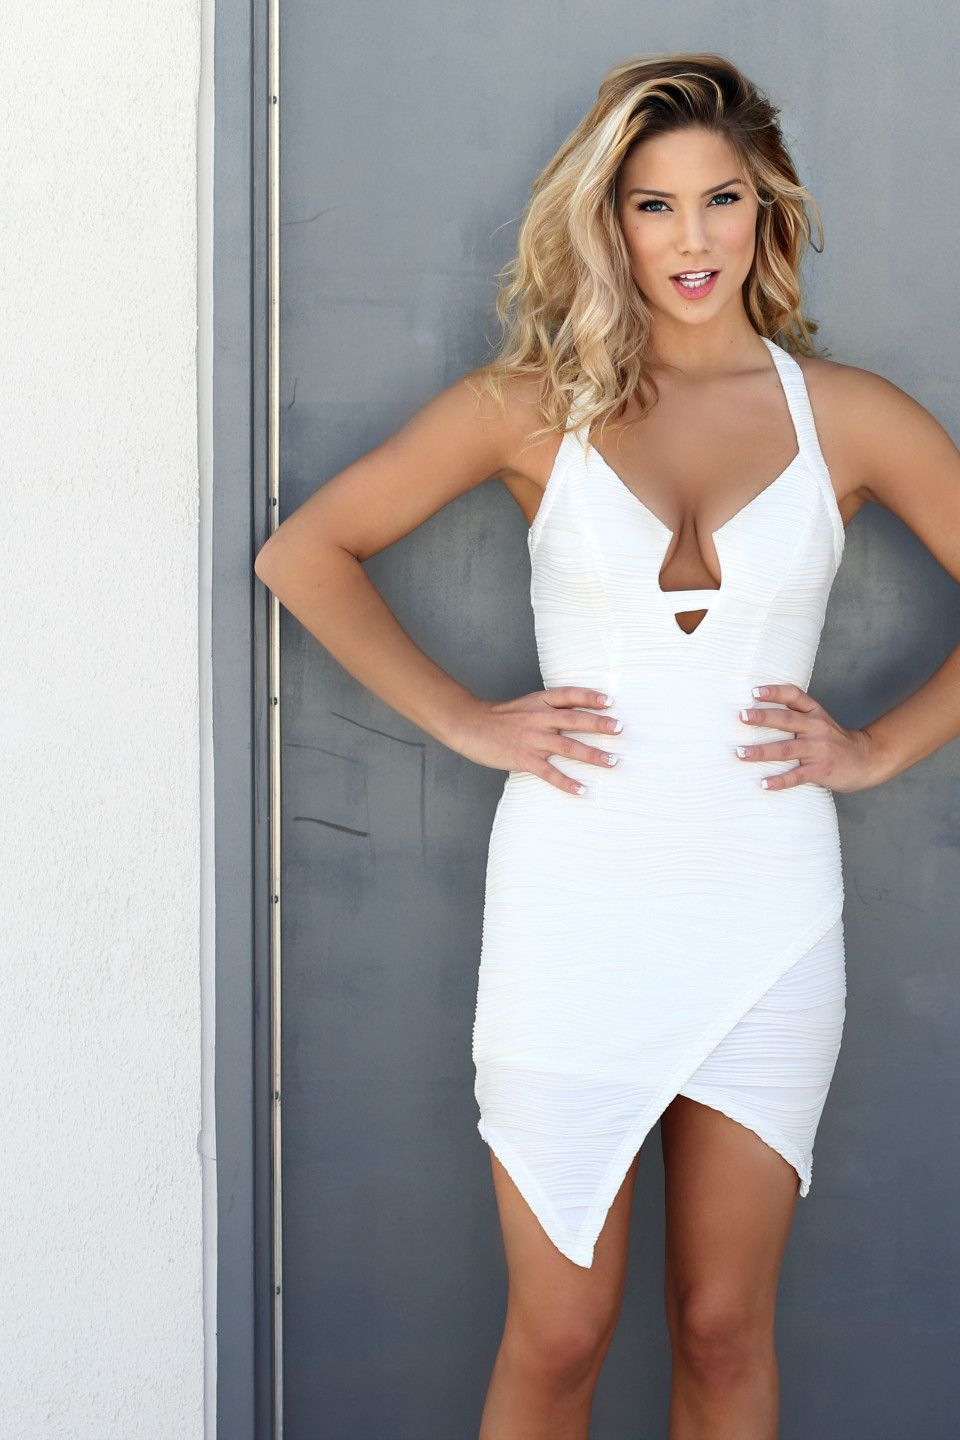 Spice up your wardrobe with this new white envelope skirt dress